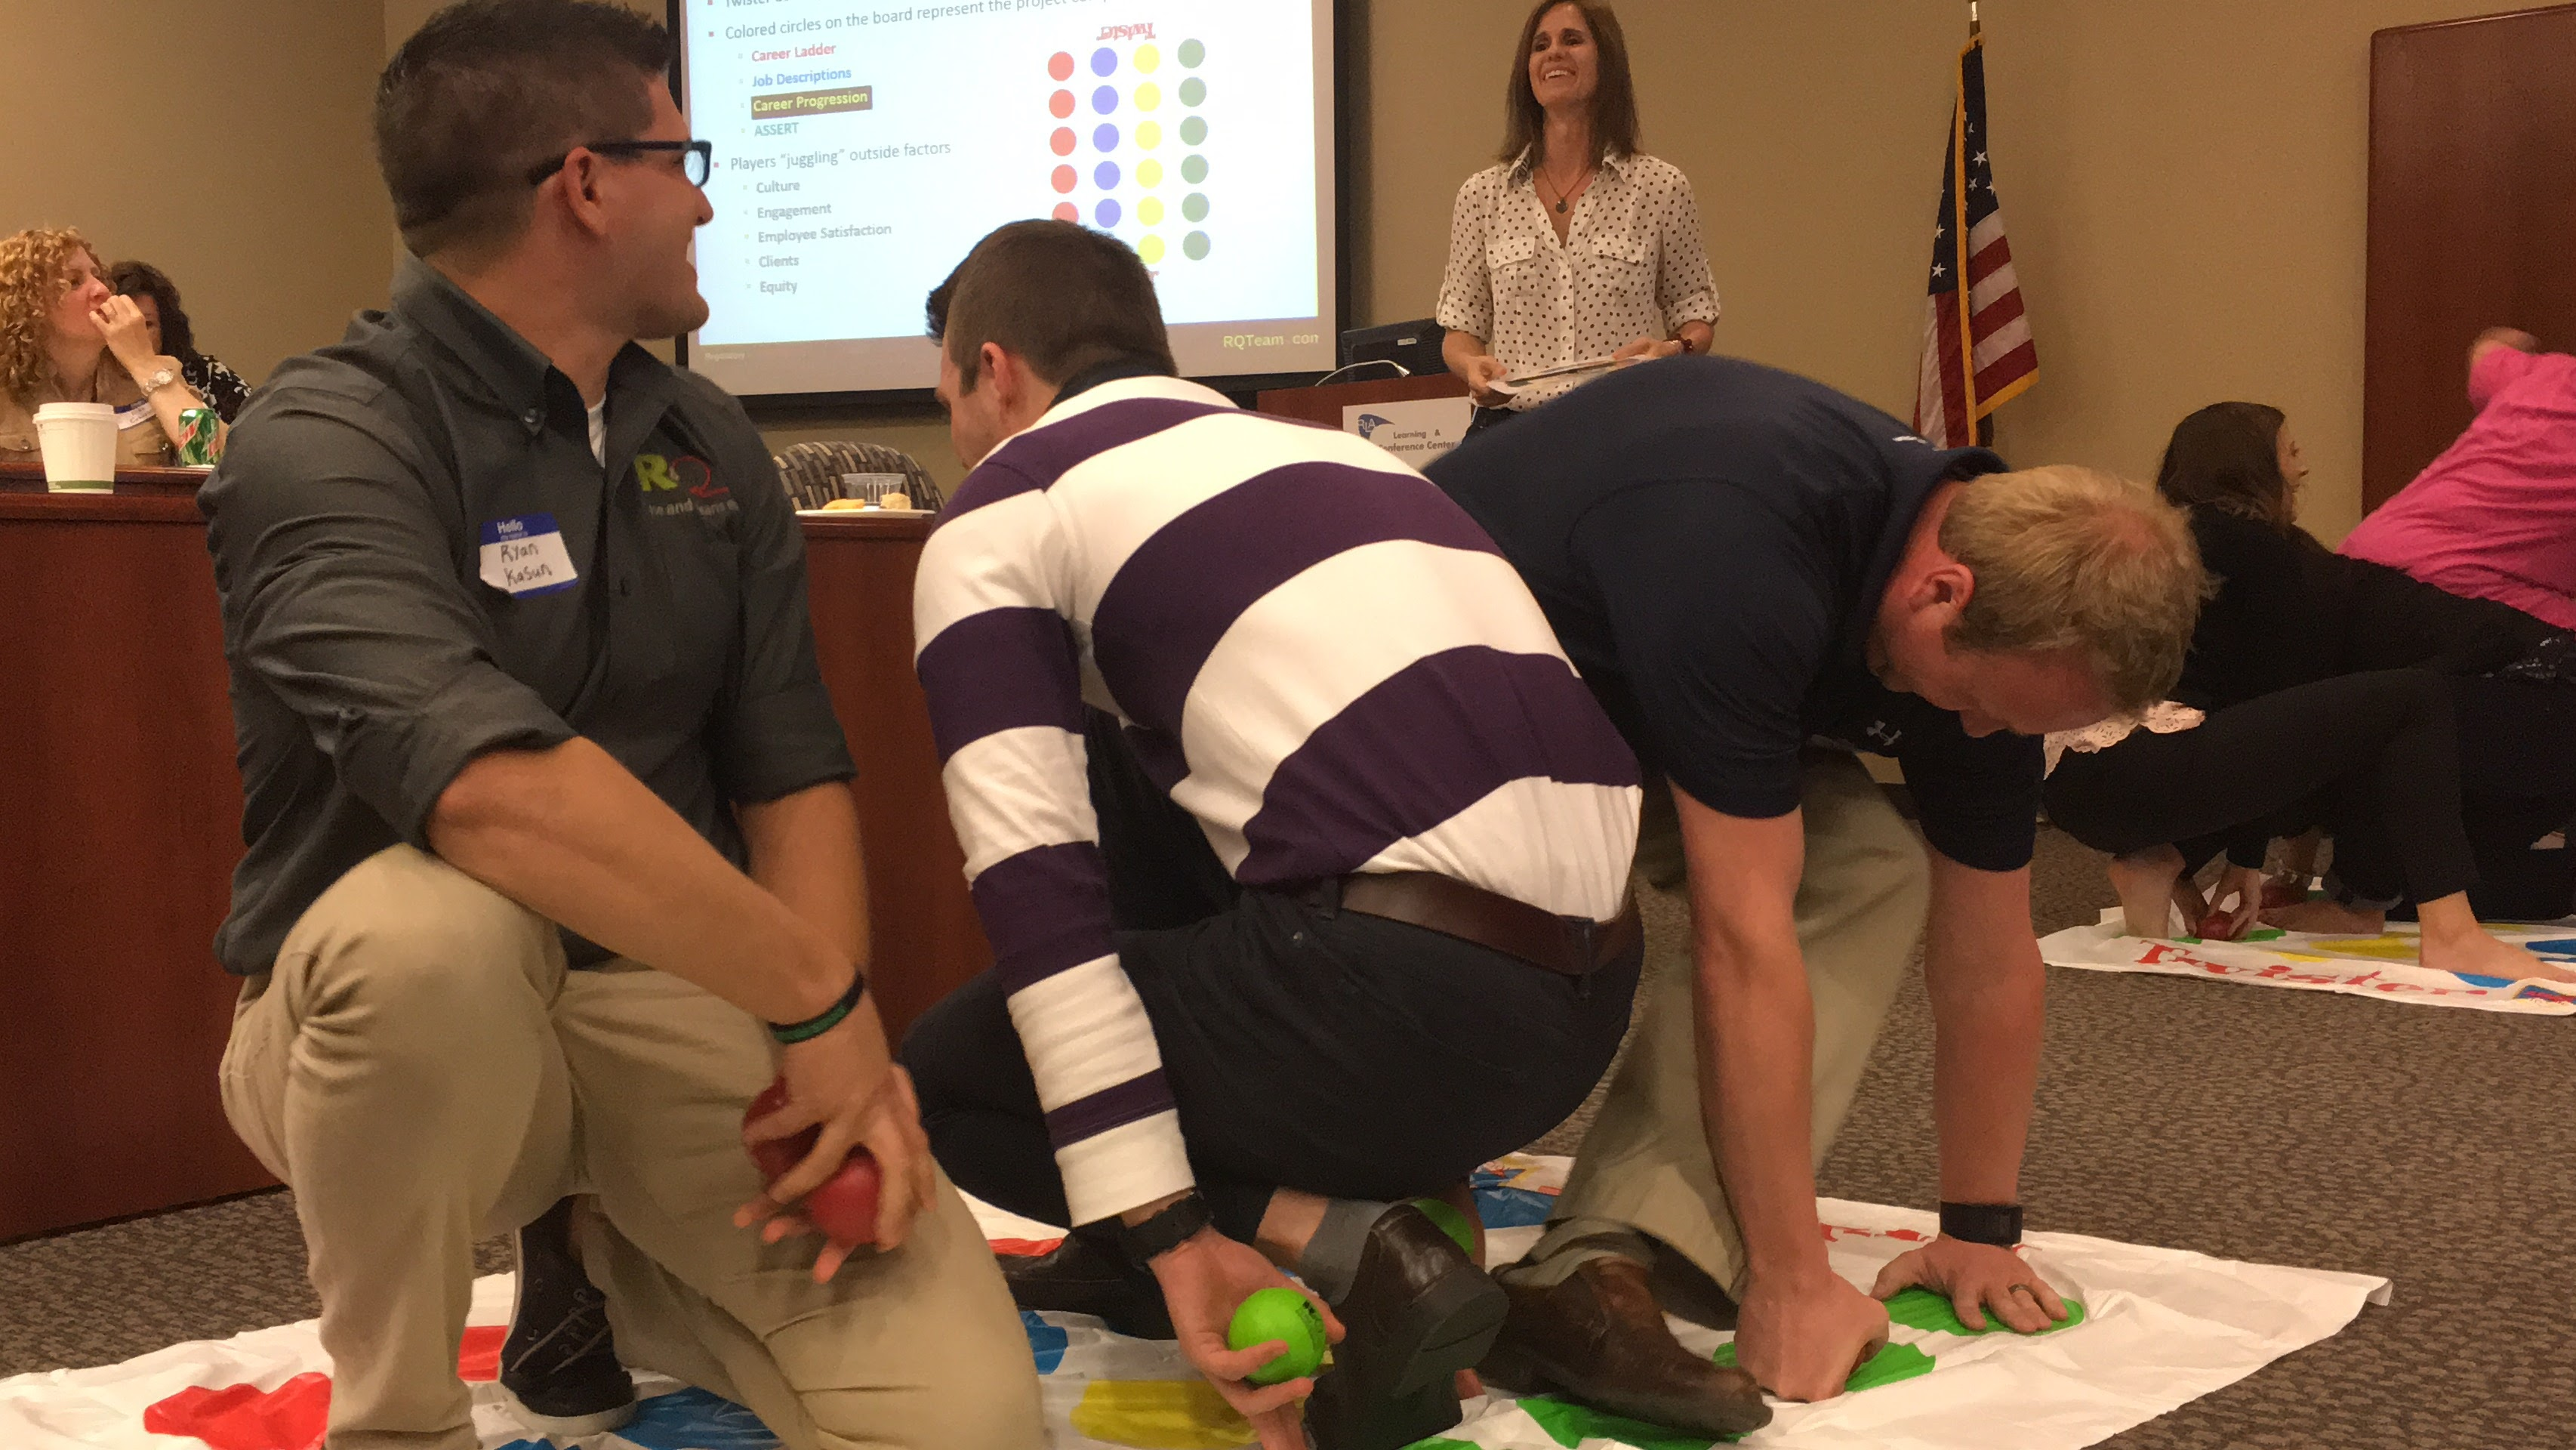 medical device consulting firms Employee Twister game